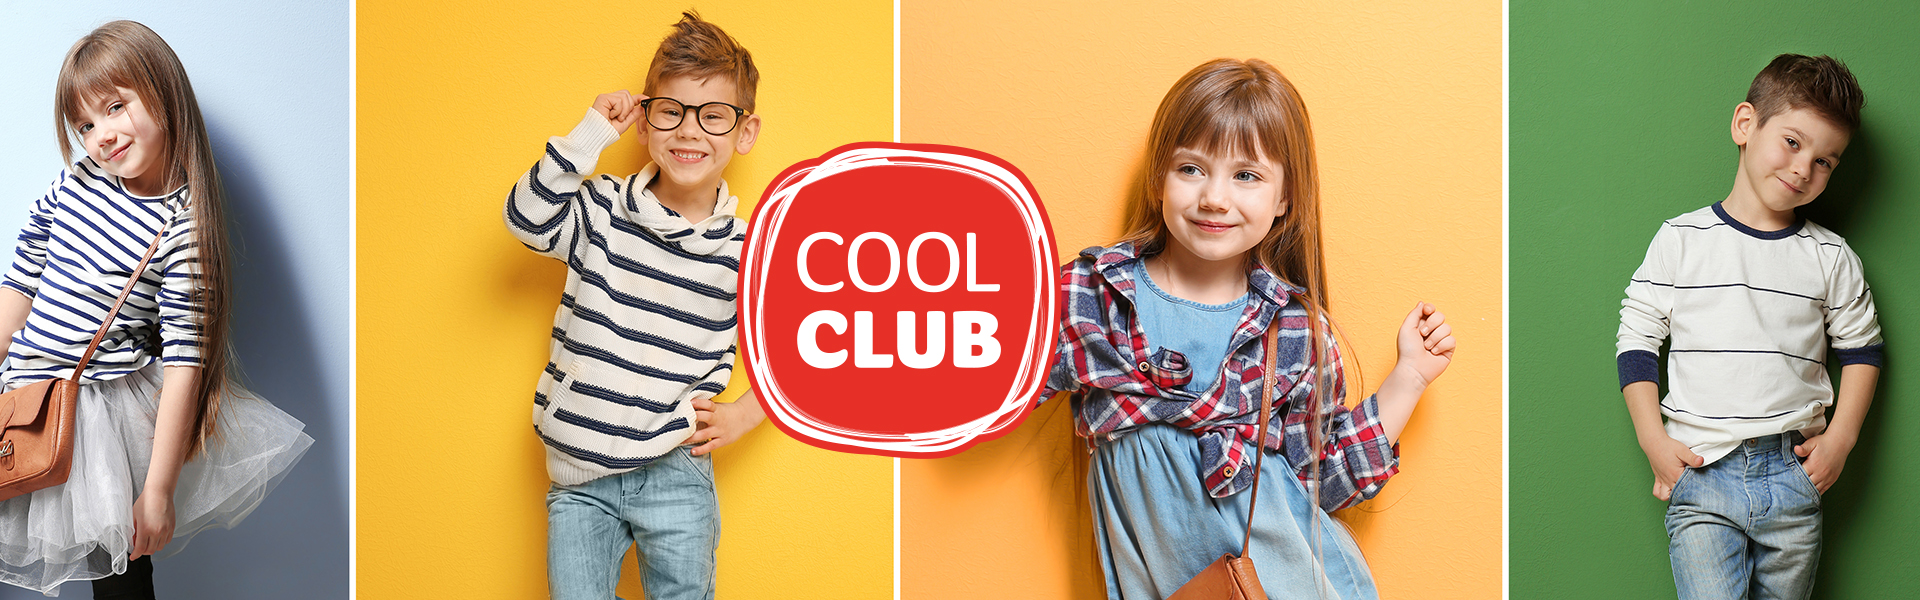 Cool Club šorti zēniem, CCB2019506                             Cool Club